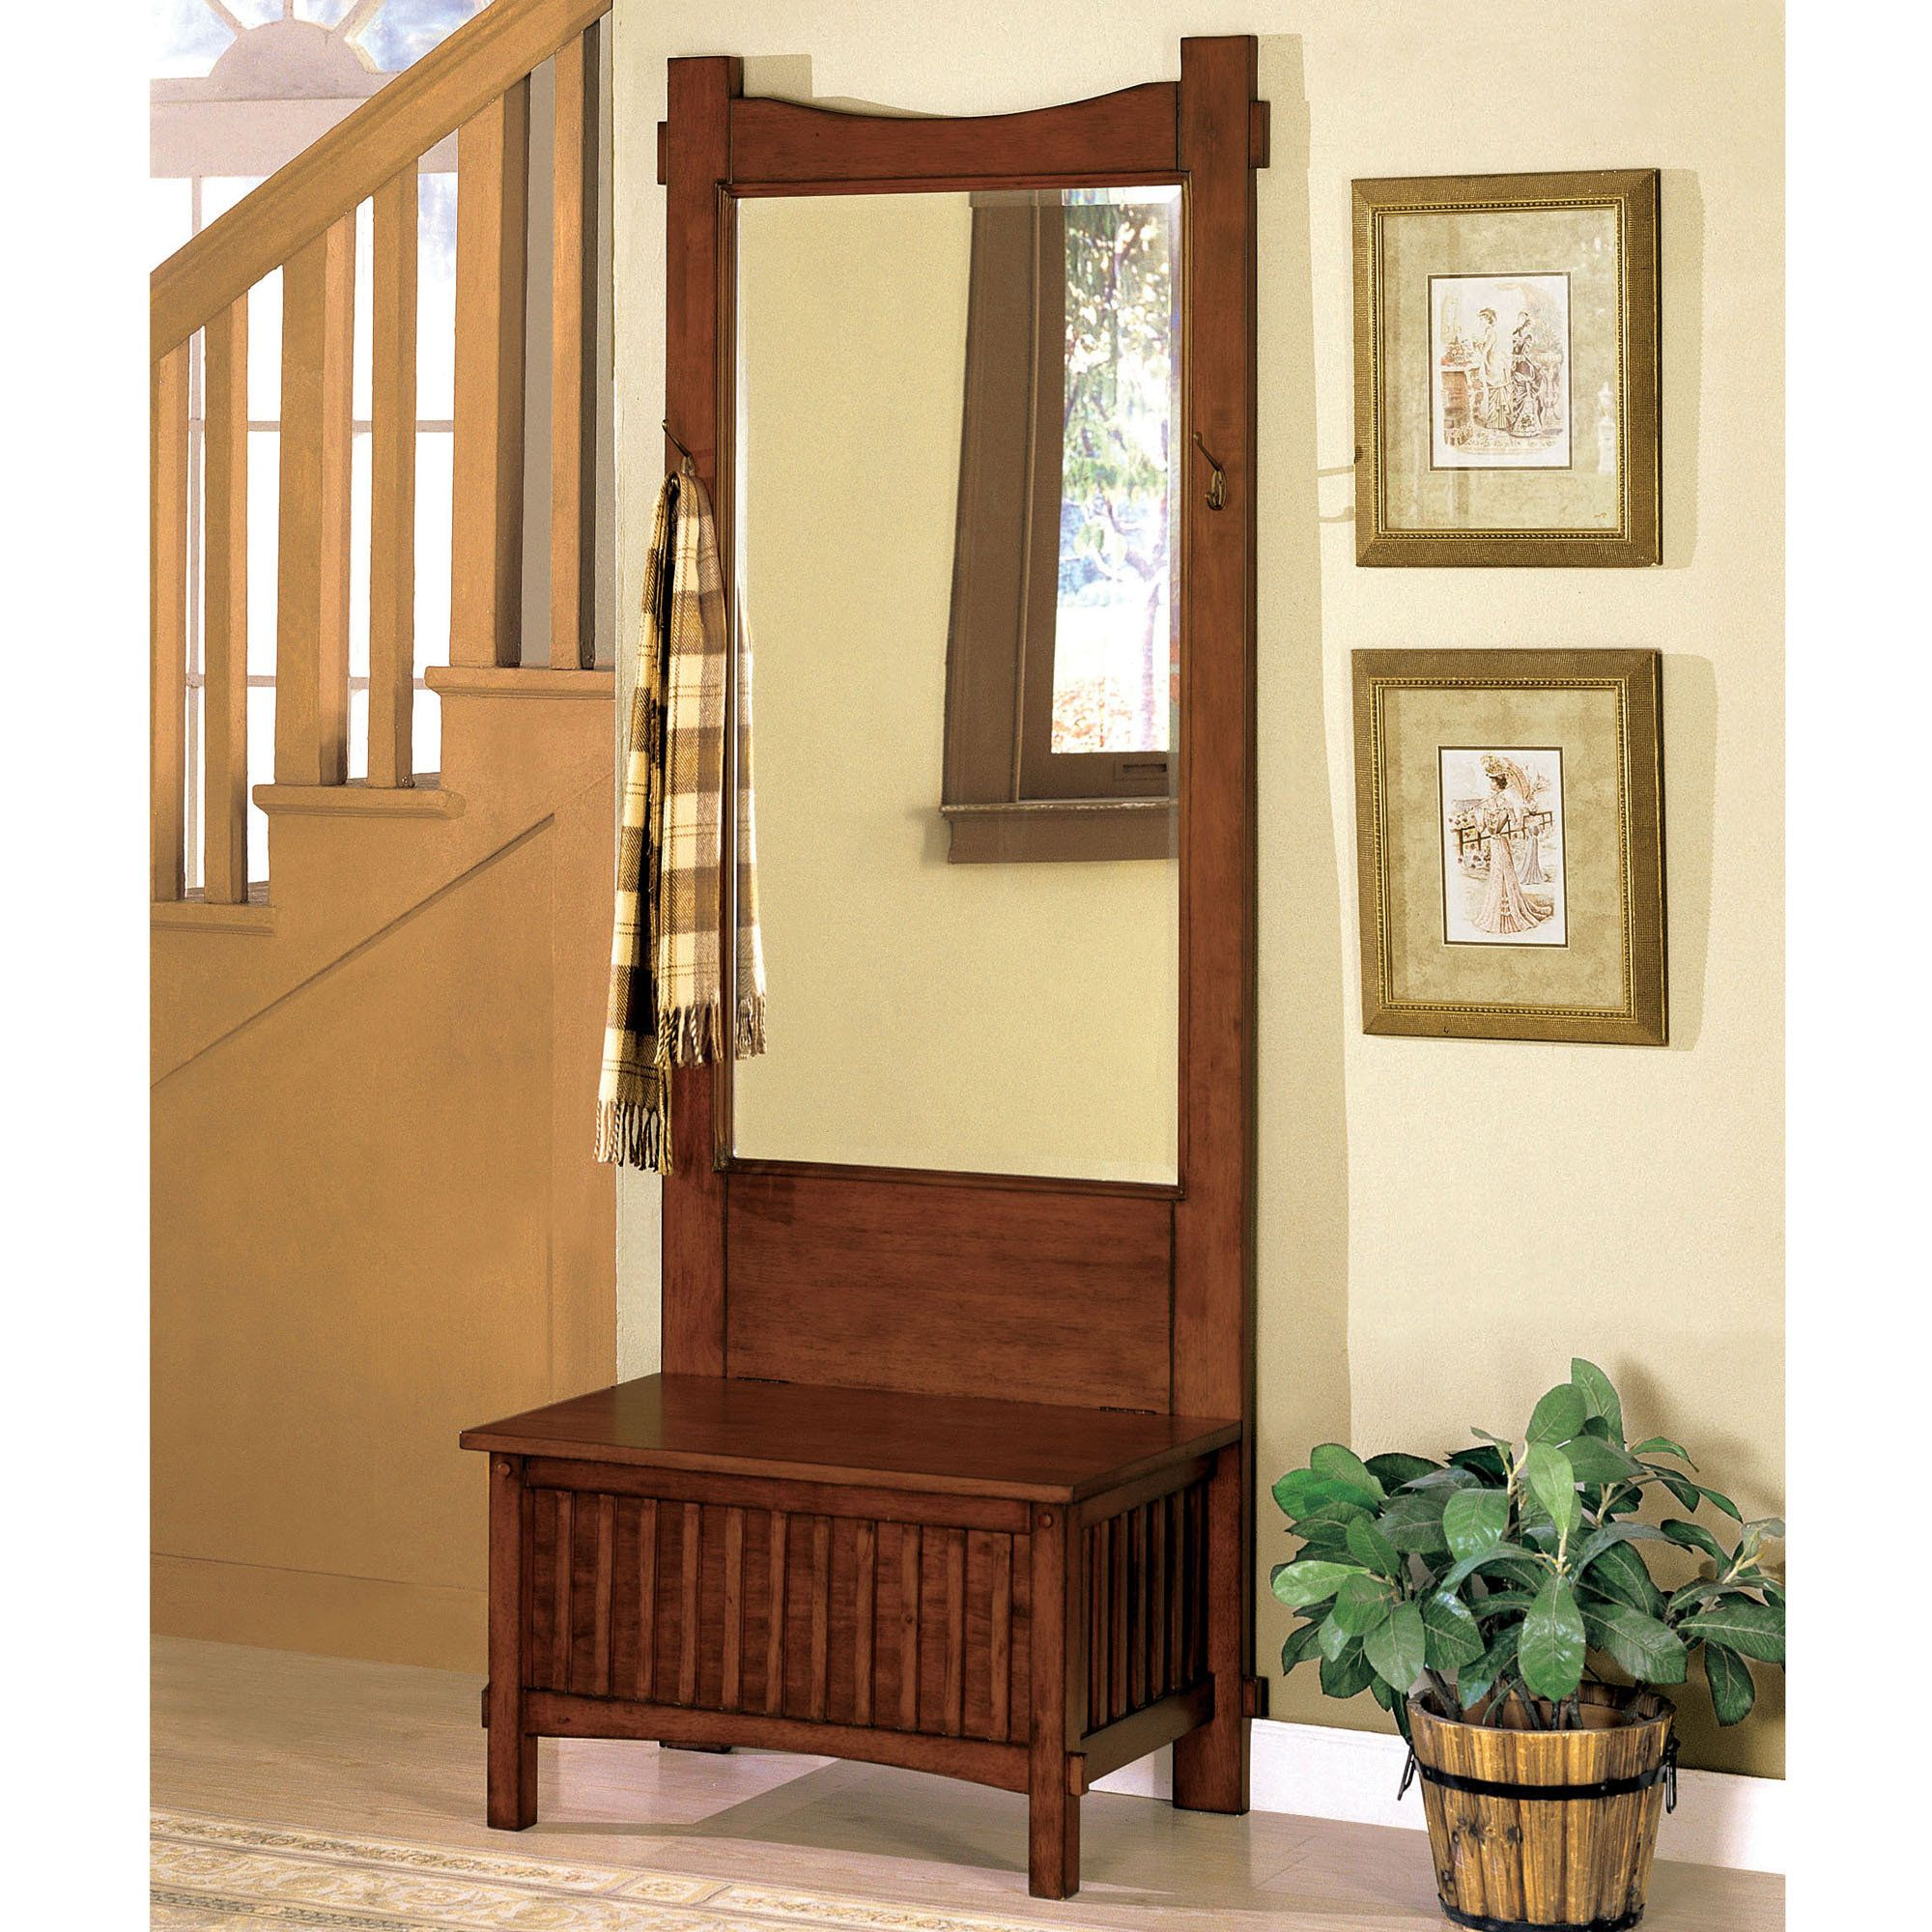 Hallway furniture with mirror  Tarrant Storage Bench with Mirror Mission Red Oak  Furniture